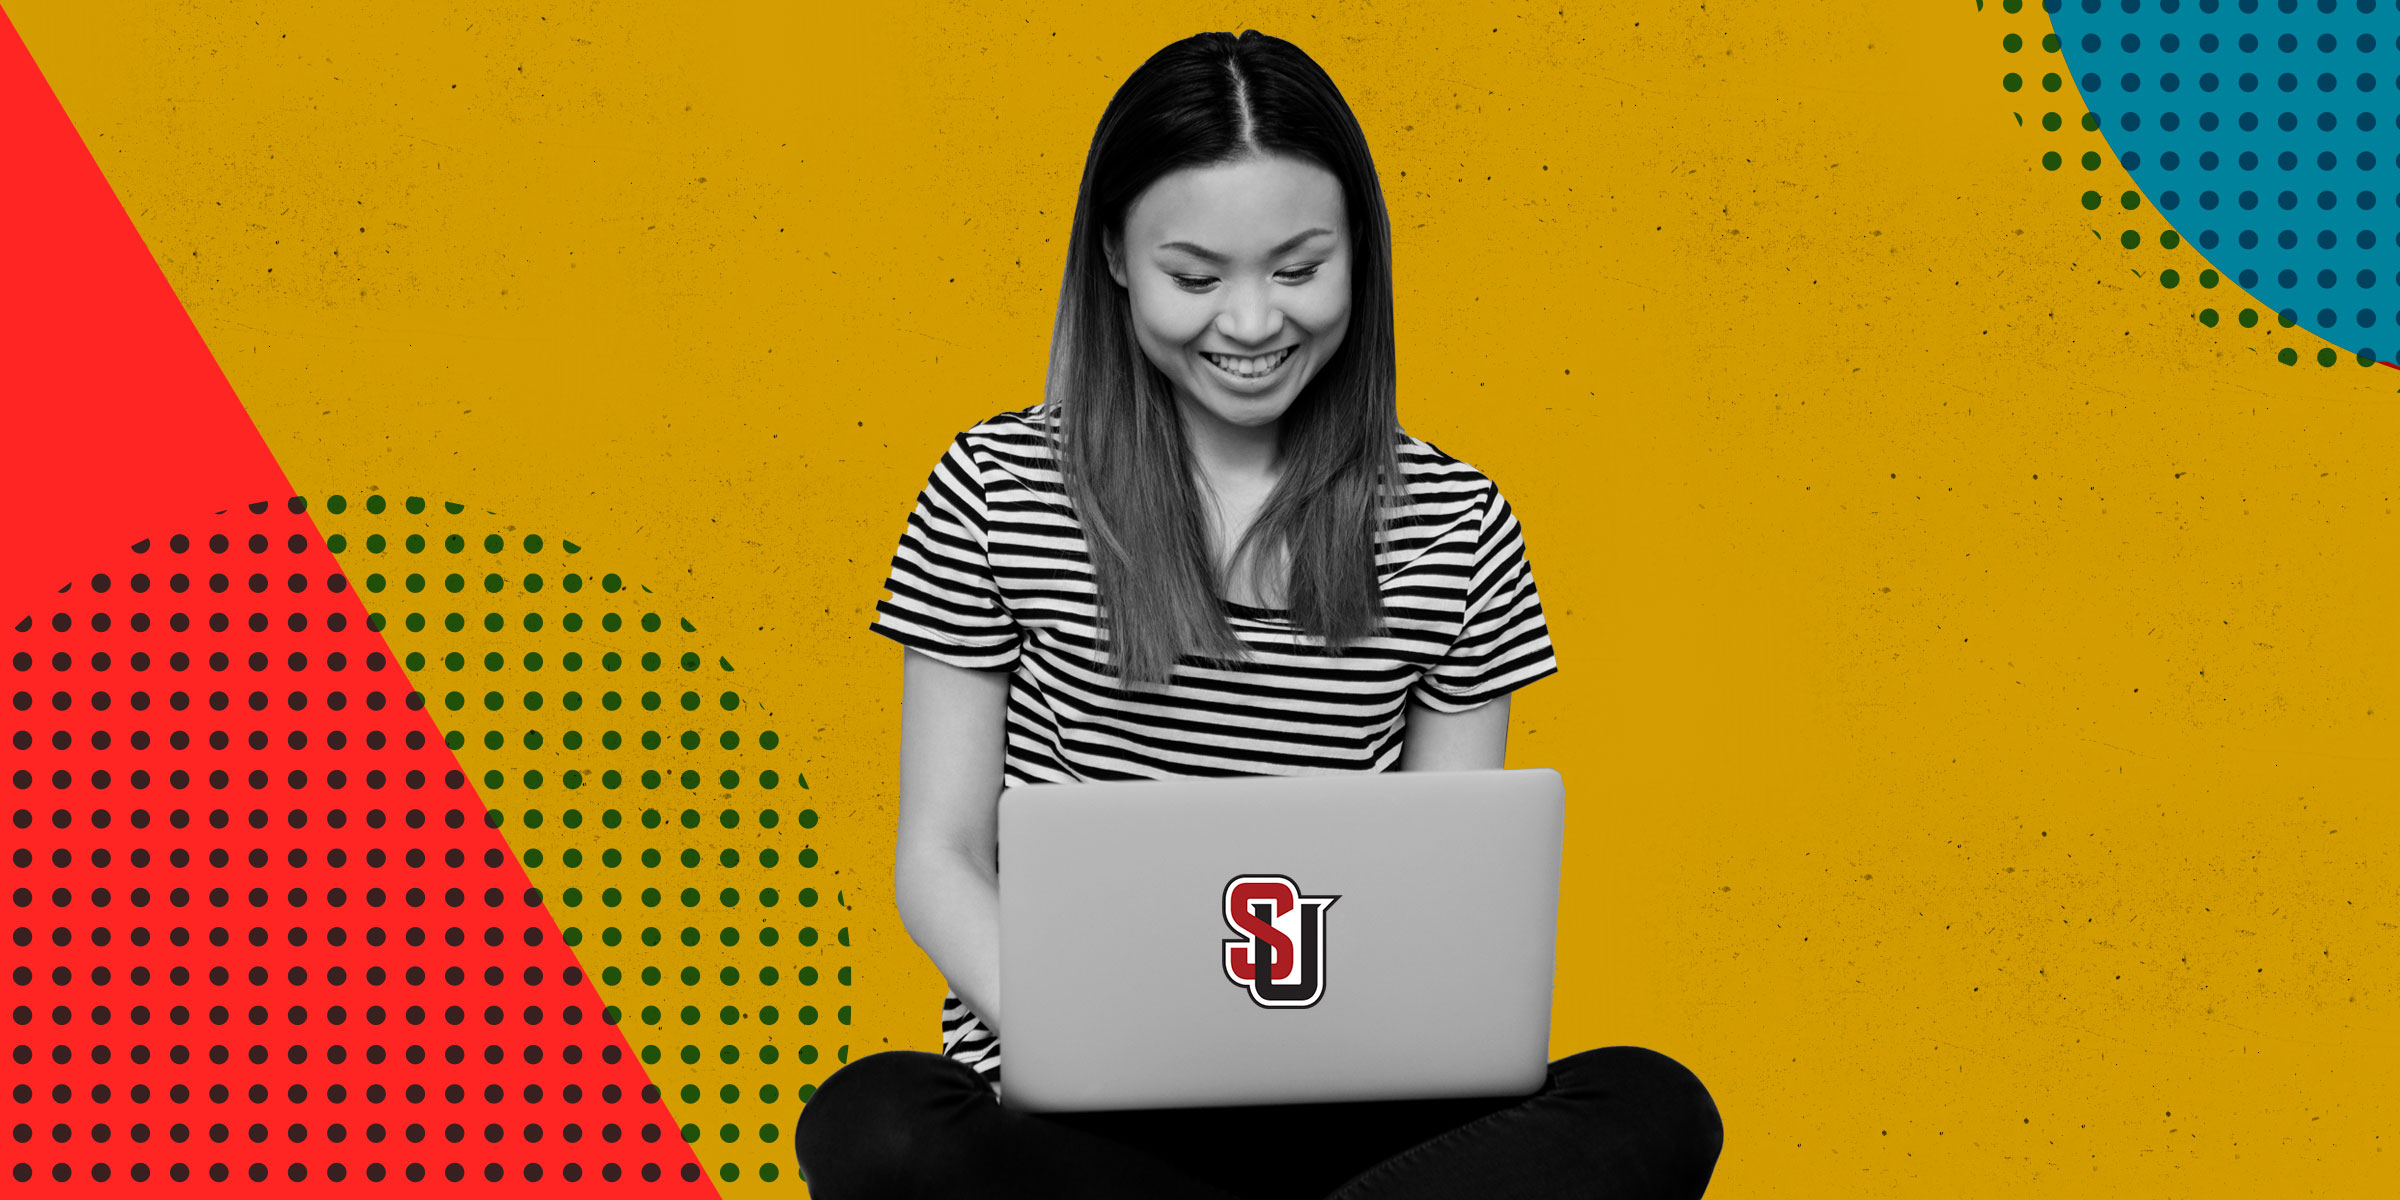 Supporting current students in every possible way remains an important priority for Seattle University.